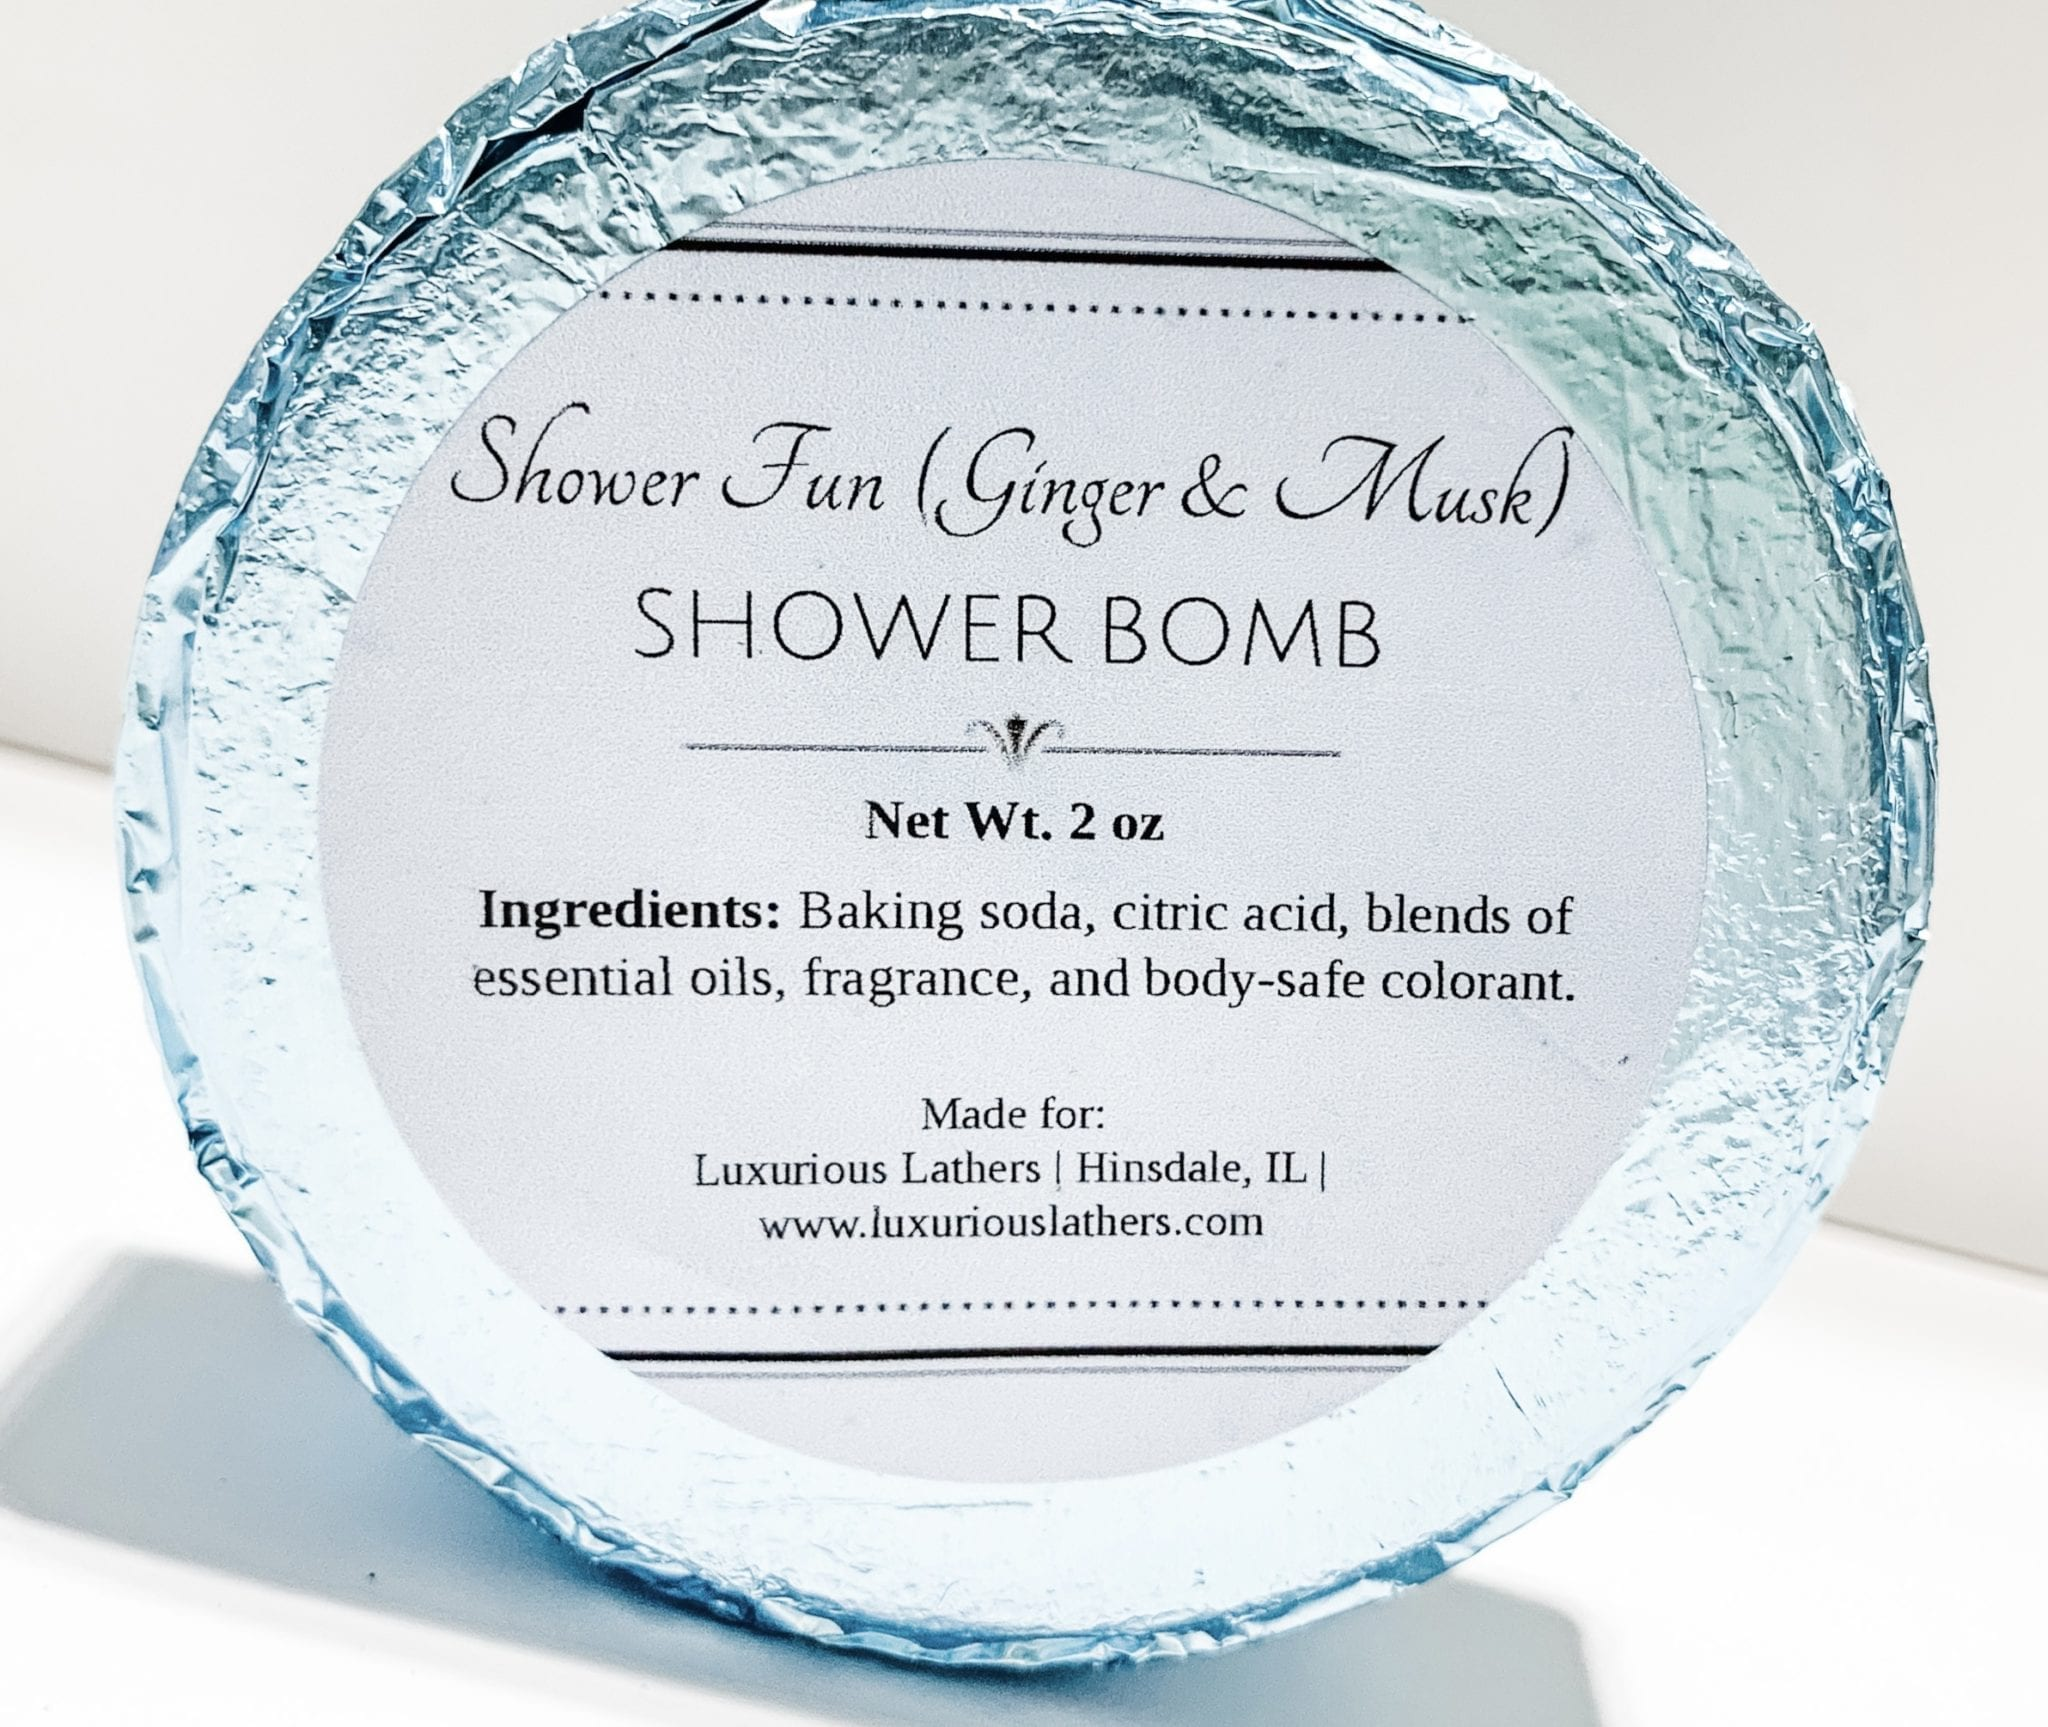 Ginger & Musk Shower Steamer